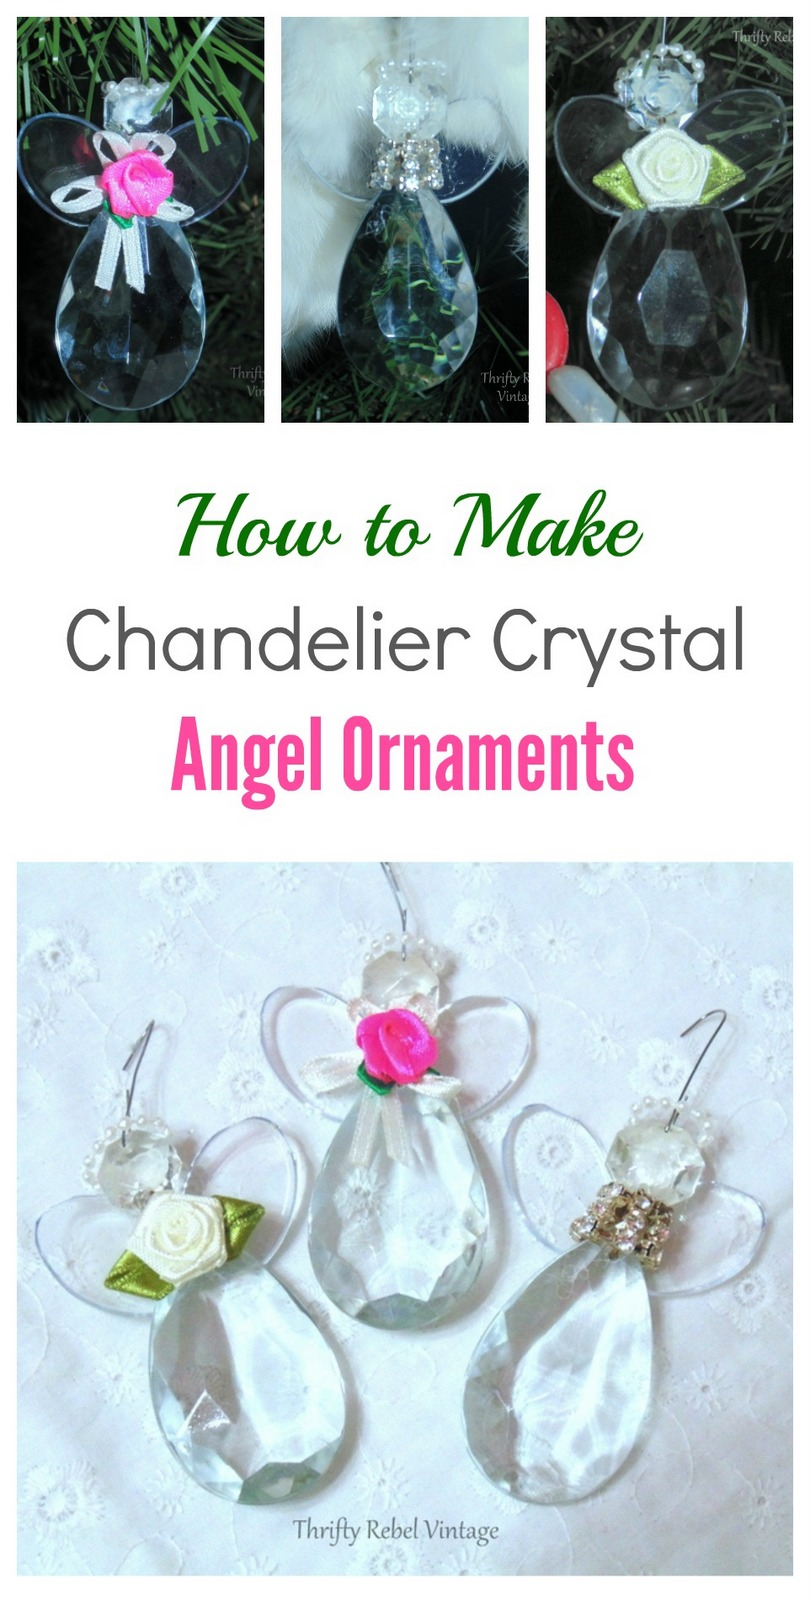 How To Make Chandelier Crystal Angel Ornaments - Color Me ...